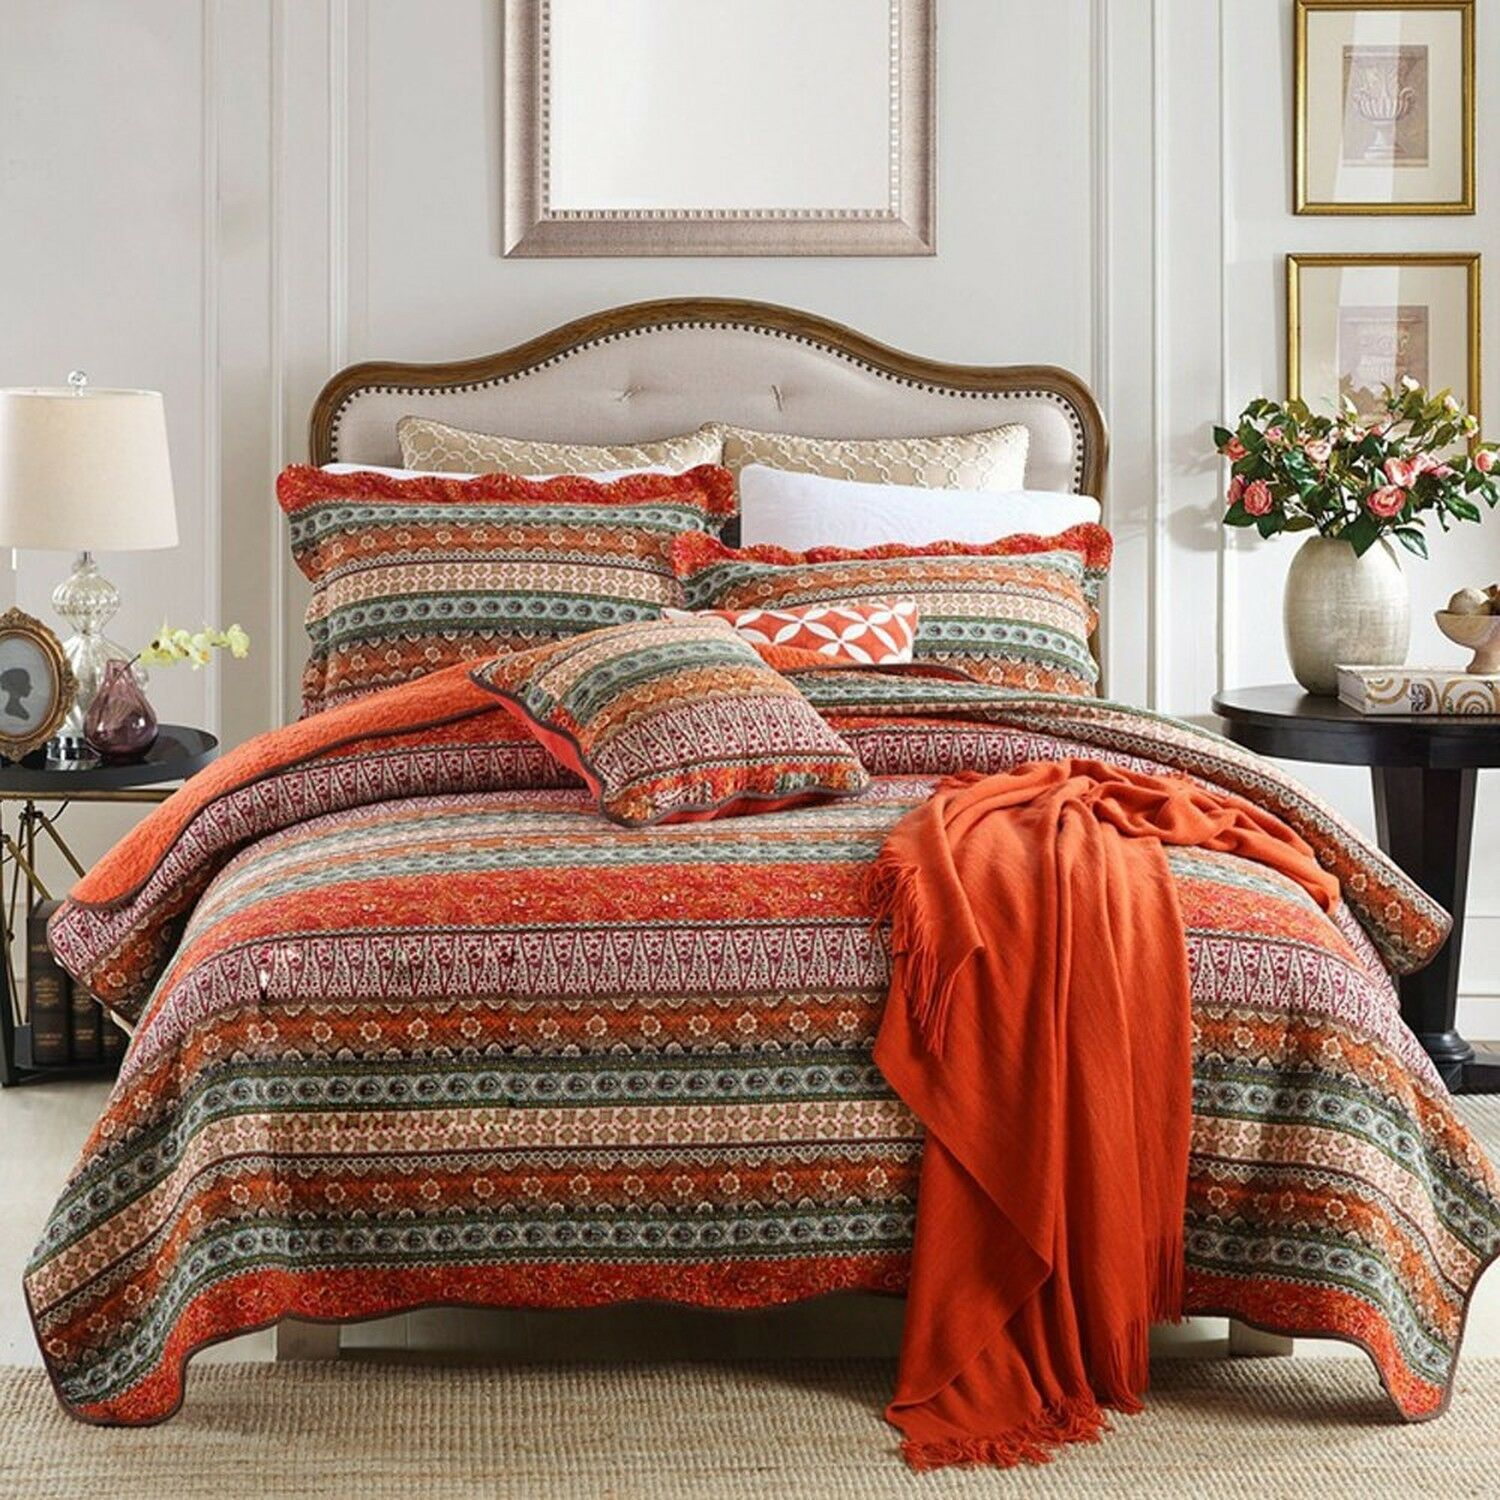 NEWLAKE Striped Classical Cotton 3-Piece Patchwork Bedspread Quilt Sets, King...